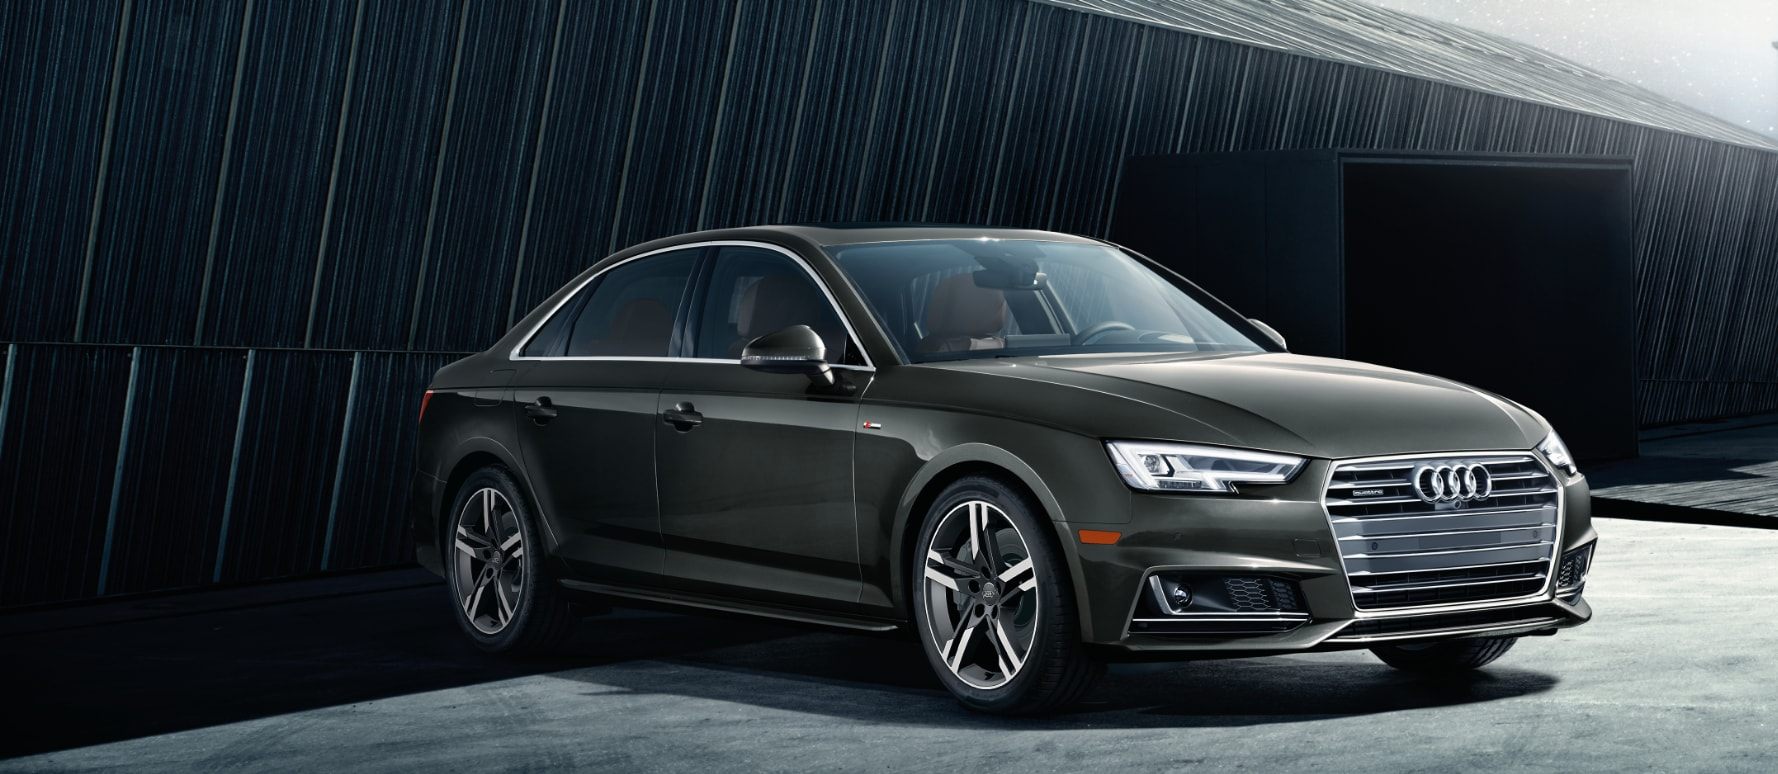 New 2017 2018 Audi A4 For Sale at McKenna Audi Serving the LA Area